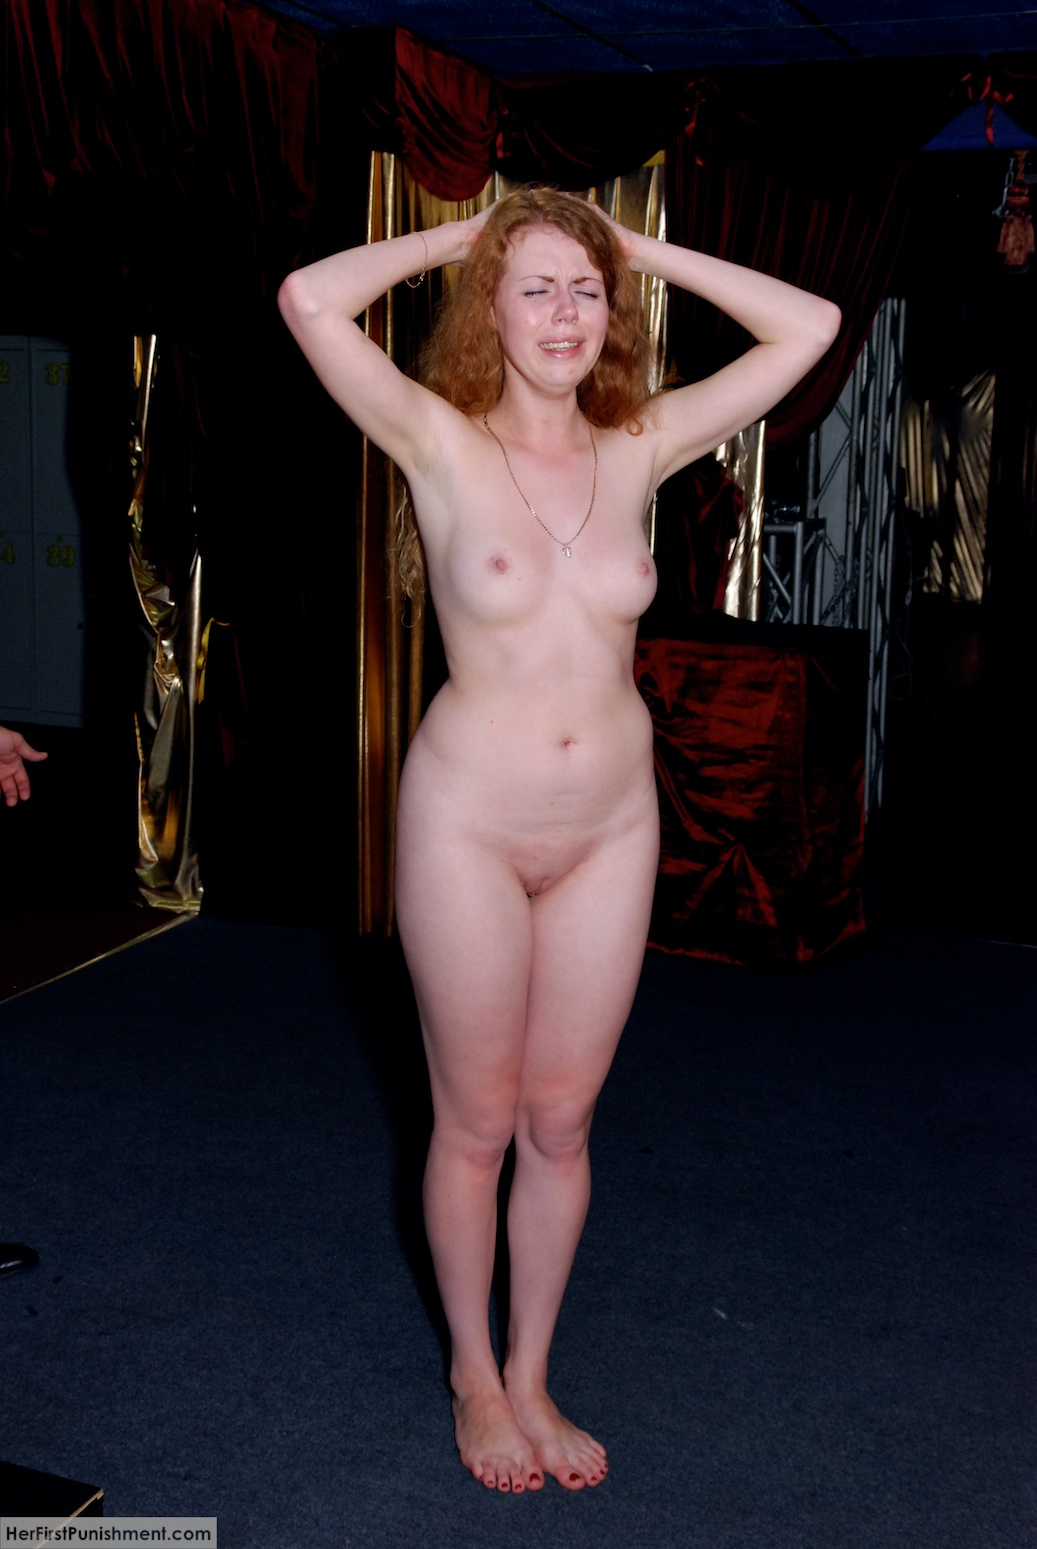 naked girl for punishment